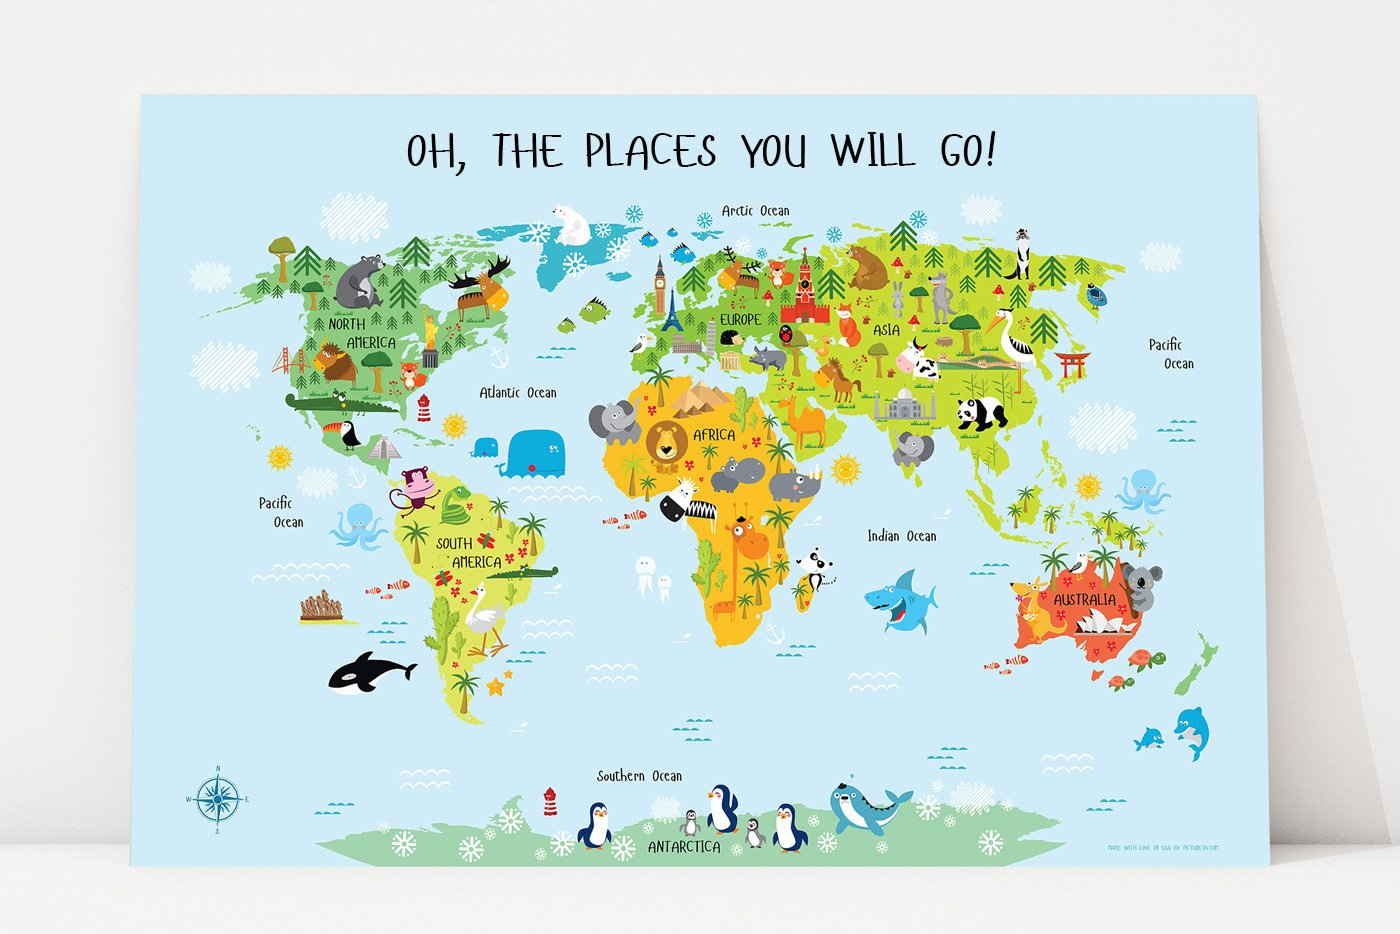 Oh The Places You'll Go, World Map for Kids Poster, Nursery Wall Art, Baby Nursery Décor, Oh, The Places You Will Go, Gifts for Toddlers (54''W x 36''H, Blue)